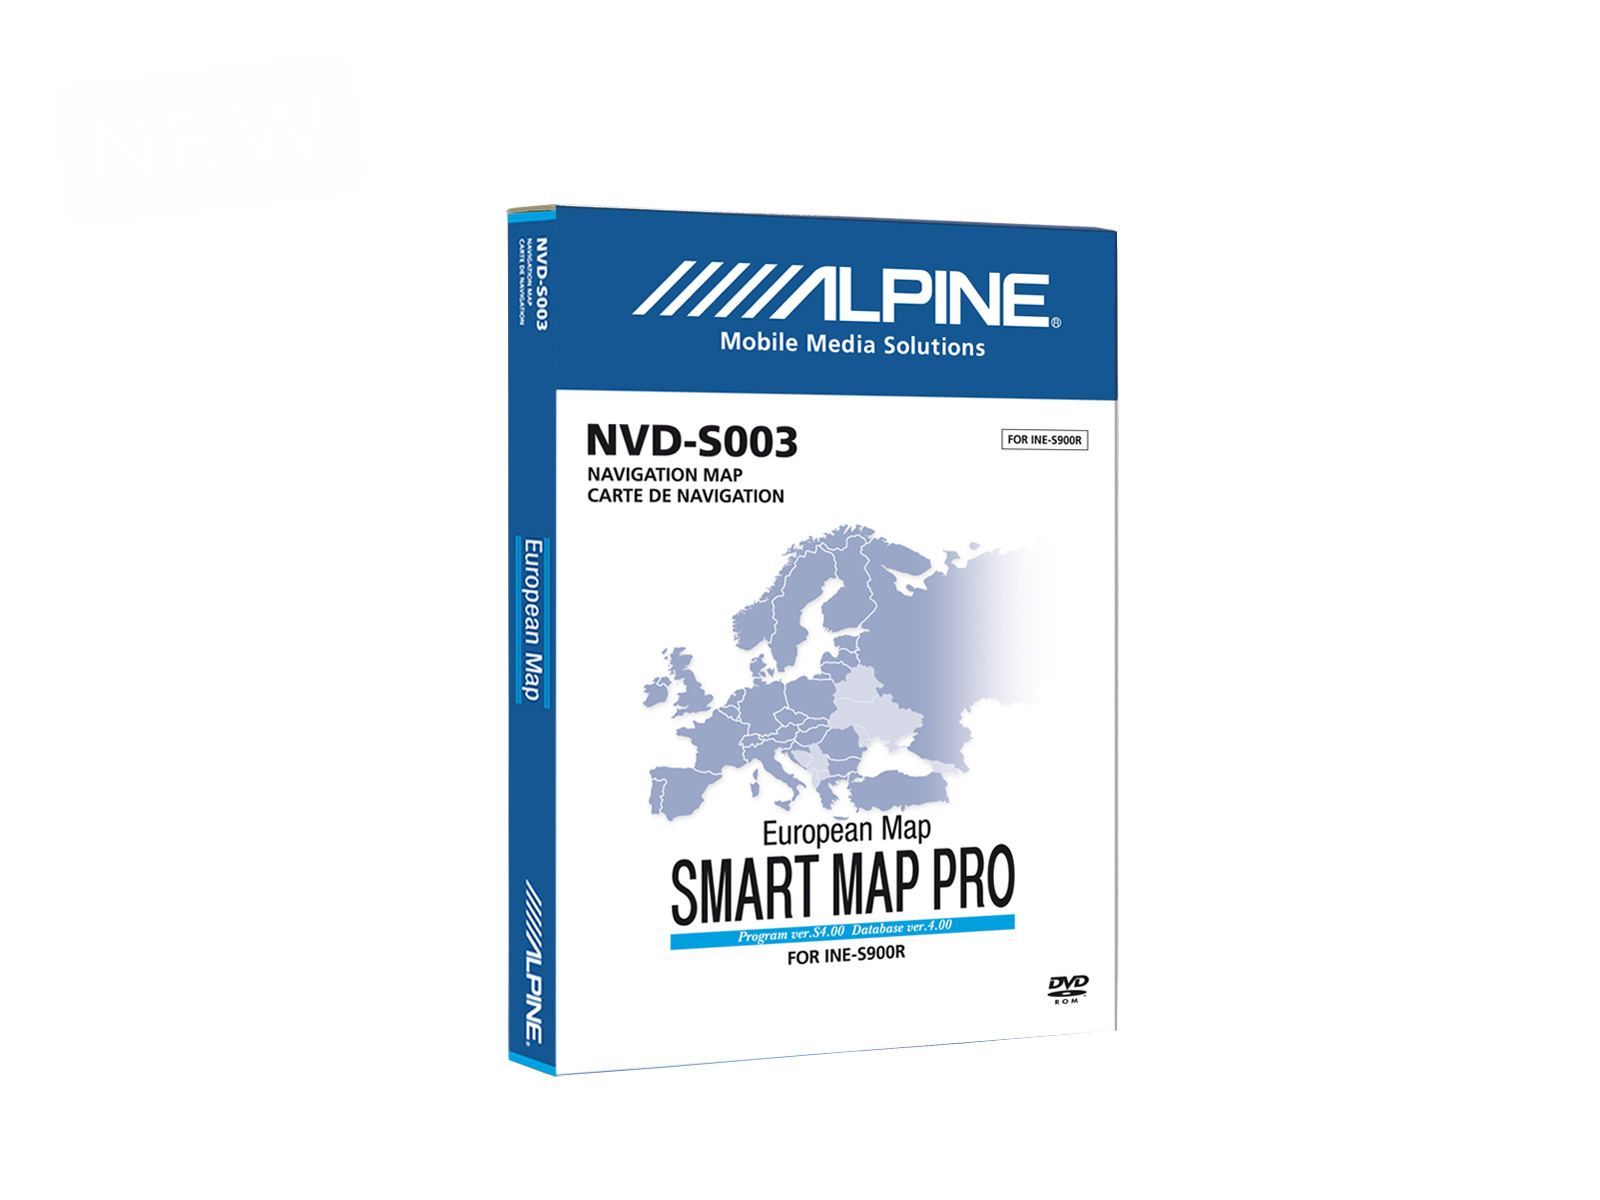 INE-S900R Map and Service Pack 2 - Alpine - NVD-S003